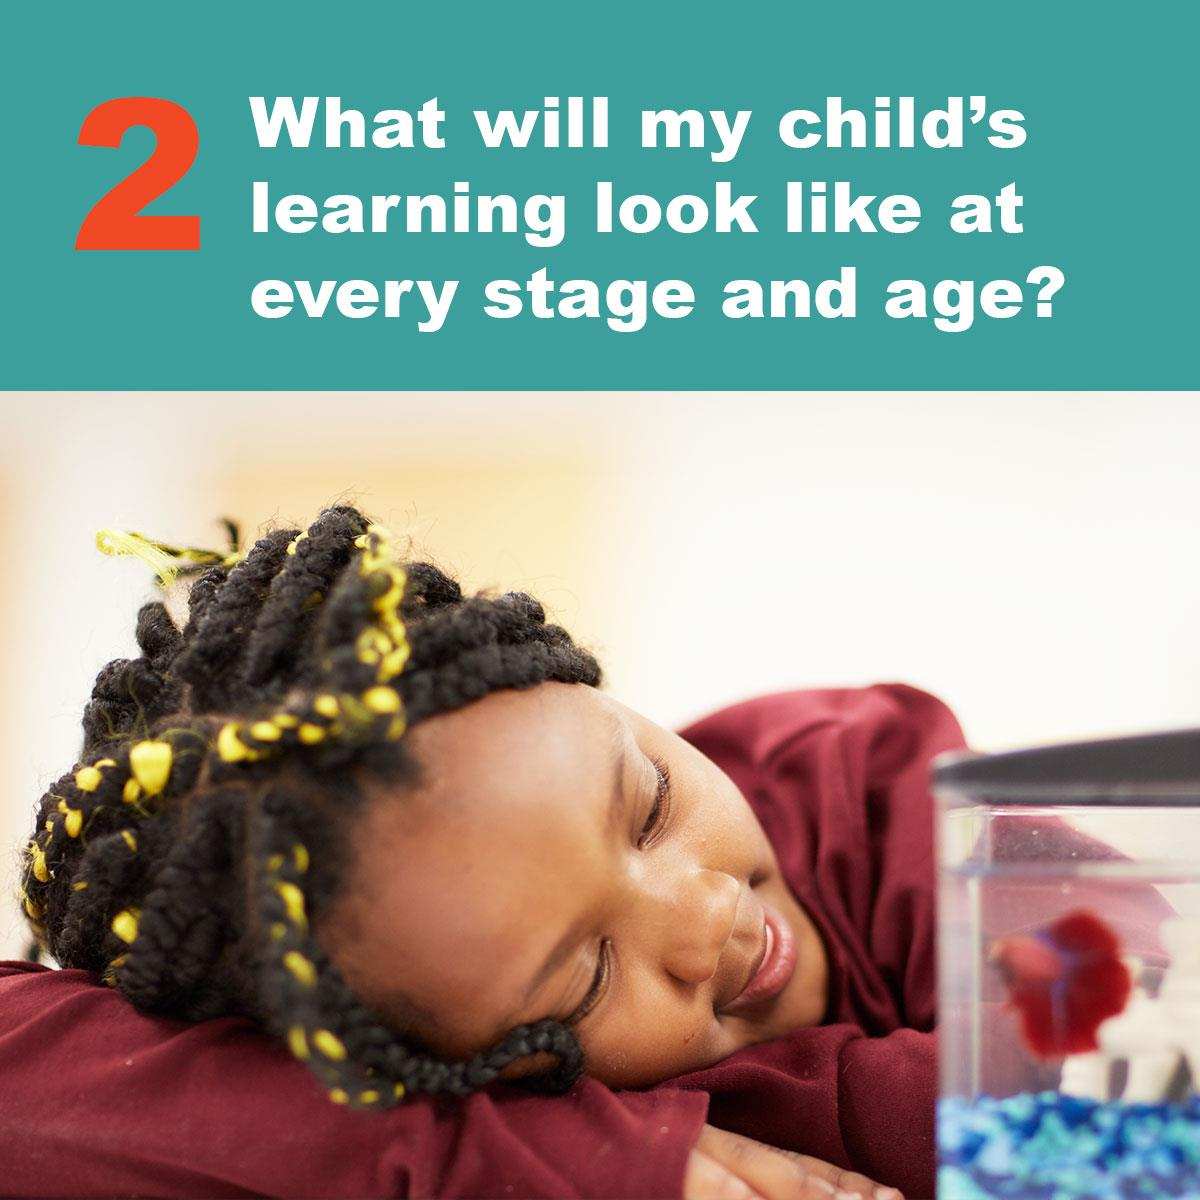 learning at each stage and age